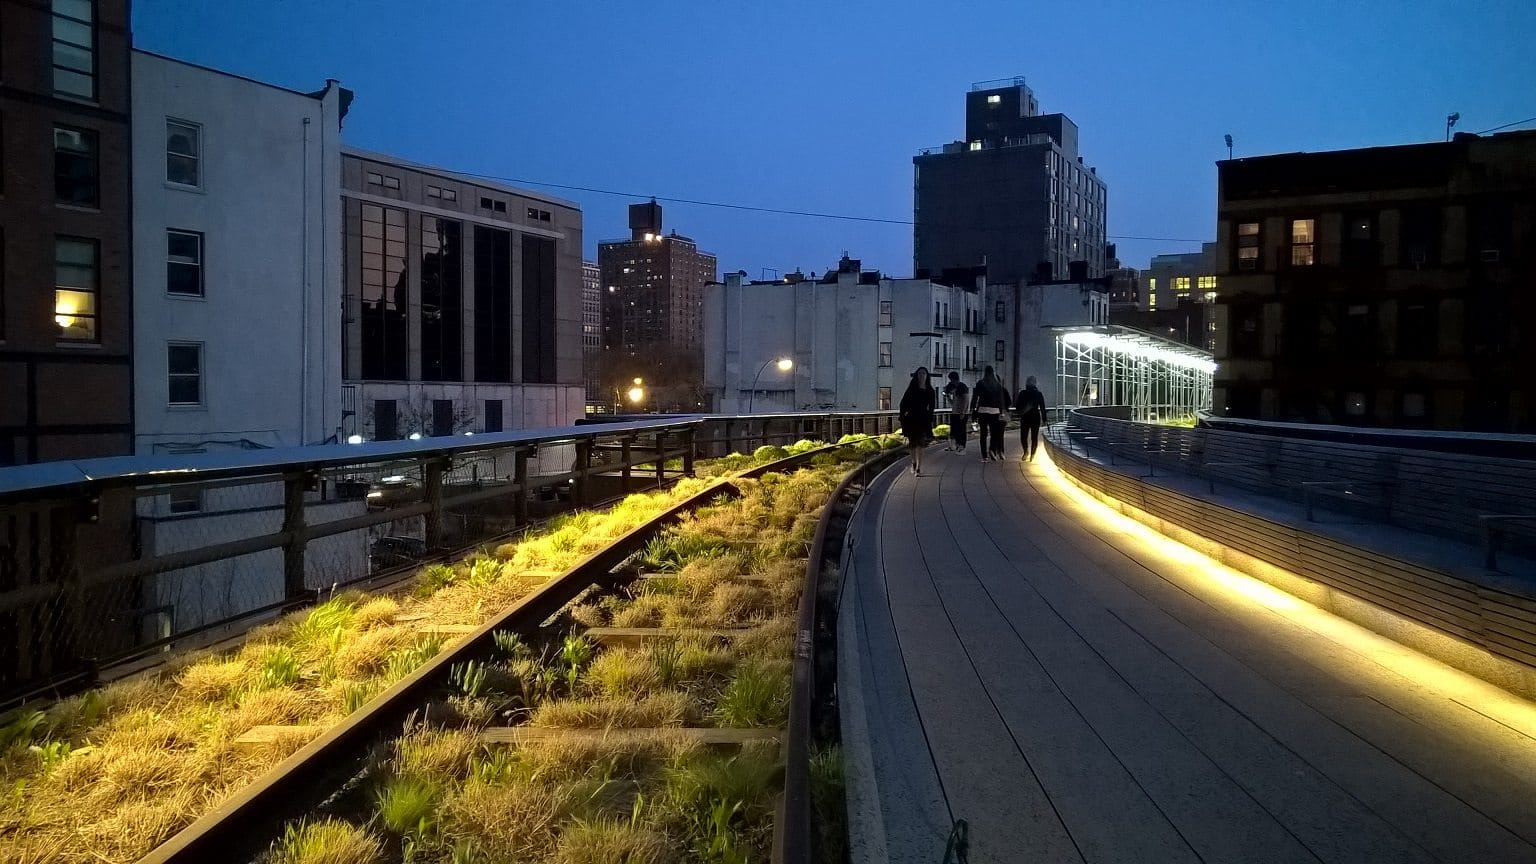 The High Line - Excellent dynamic range capabilities